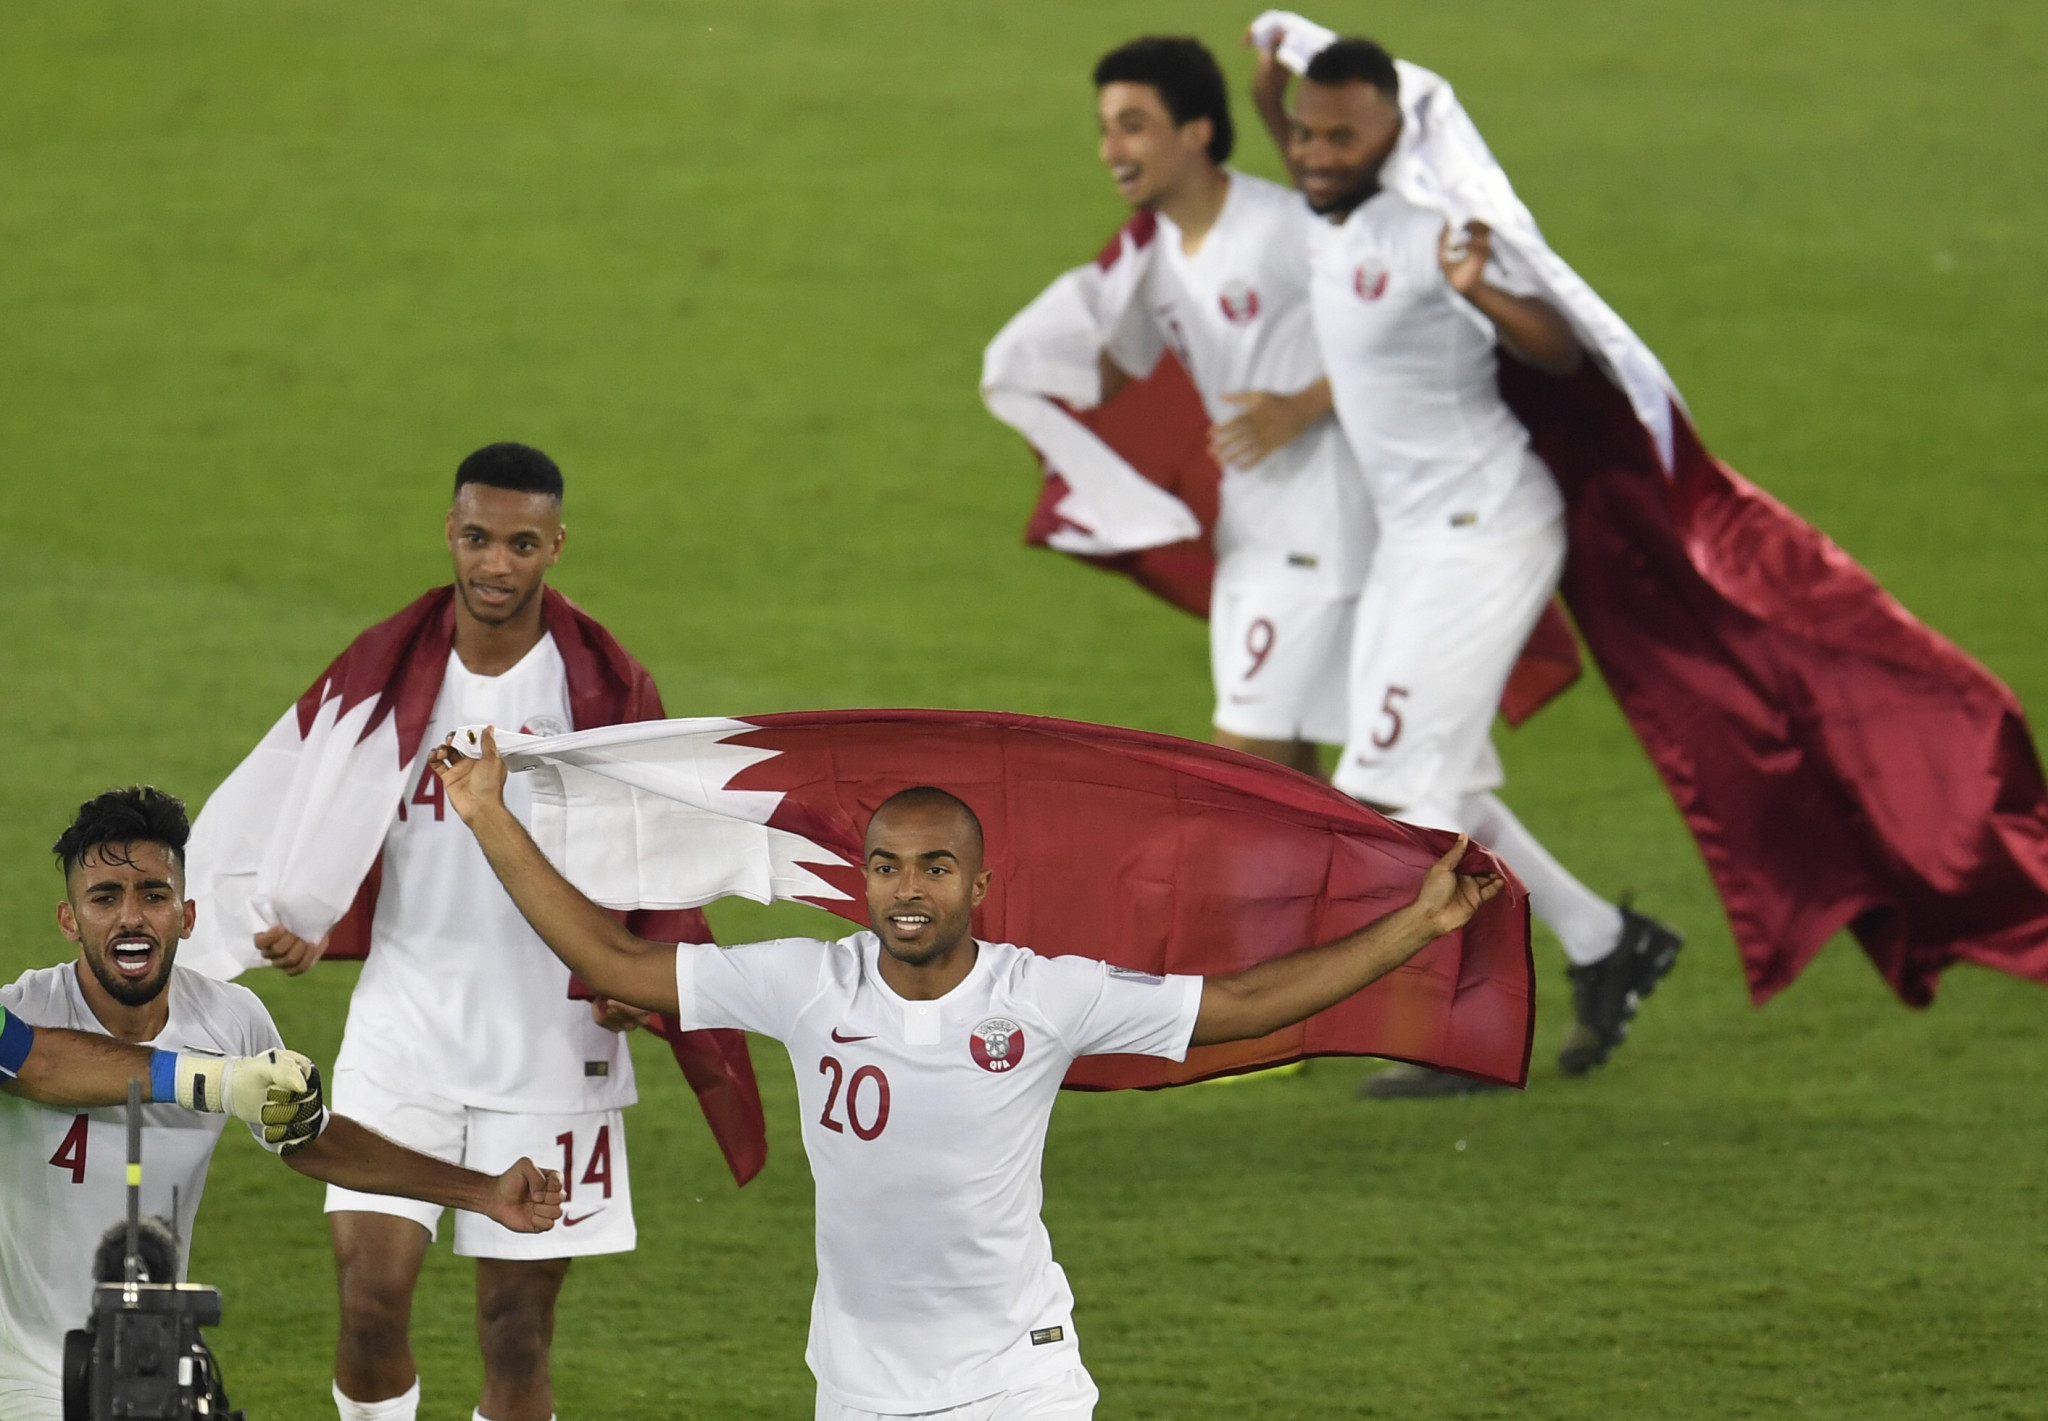 A 3-1 win over Japan saw Qatar seal their first Asian Cup title ©Getty Images